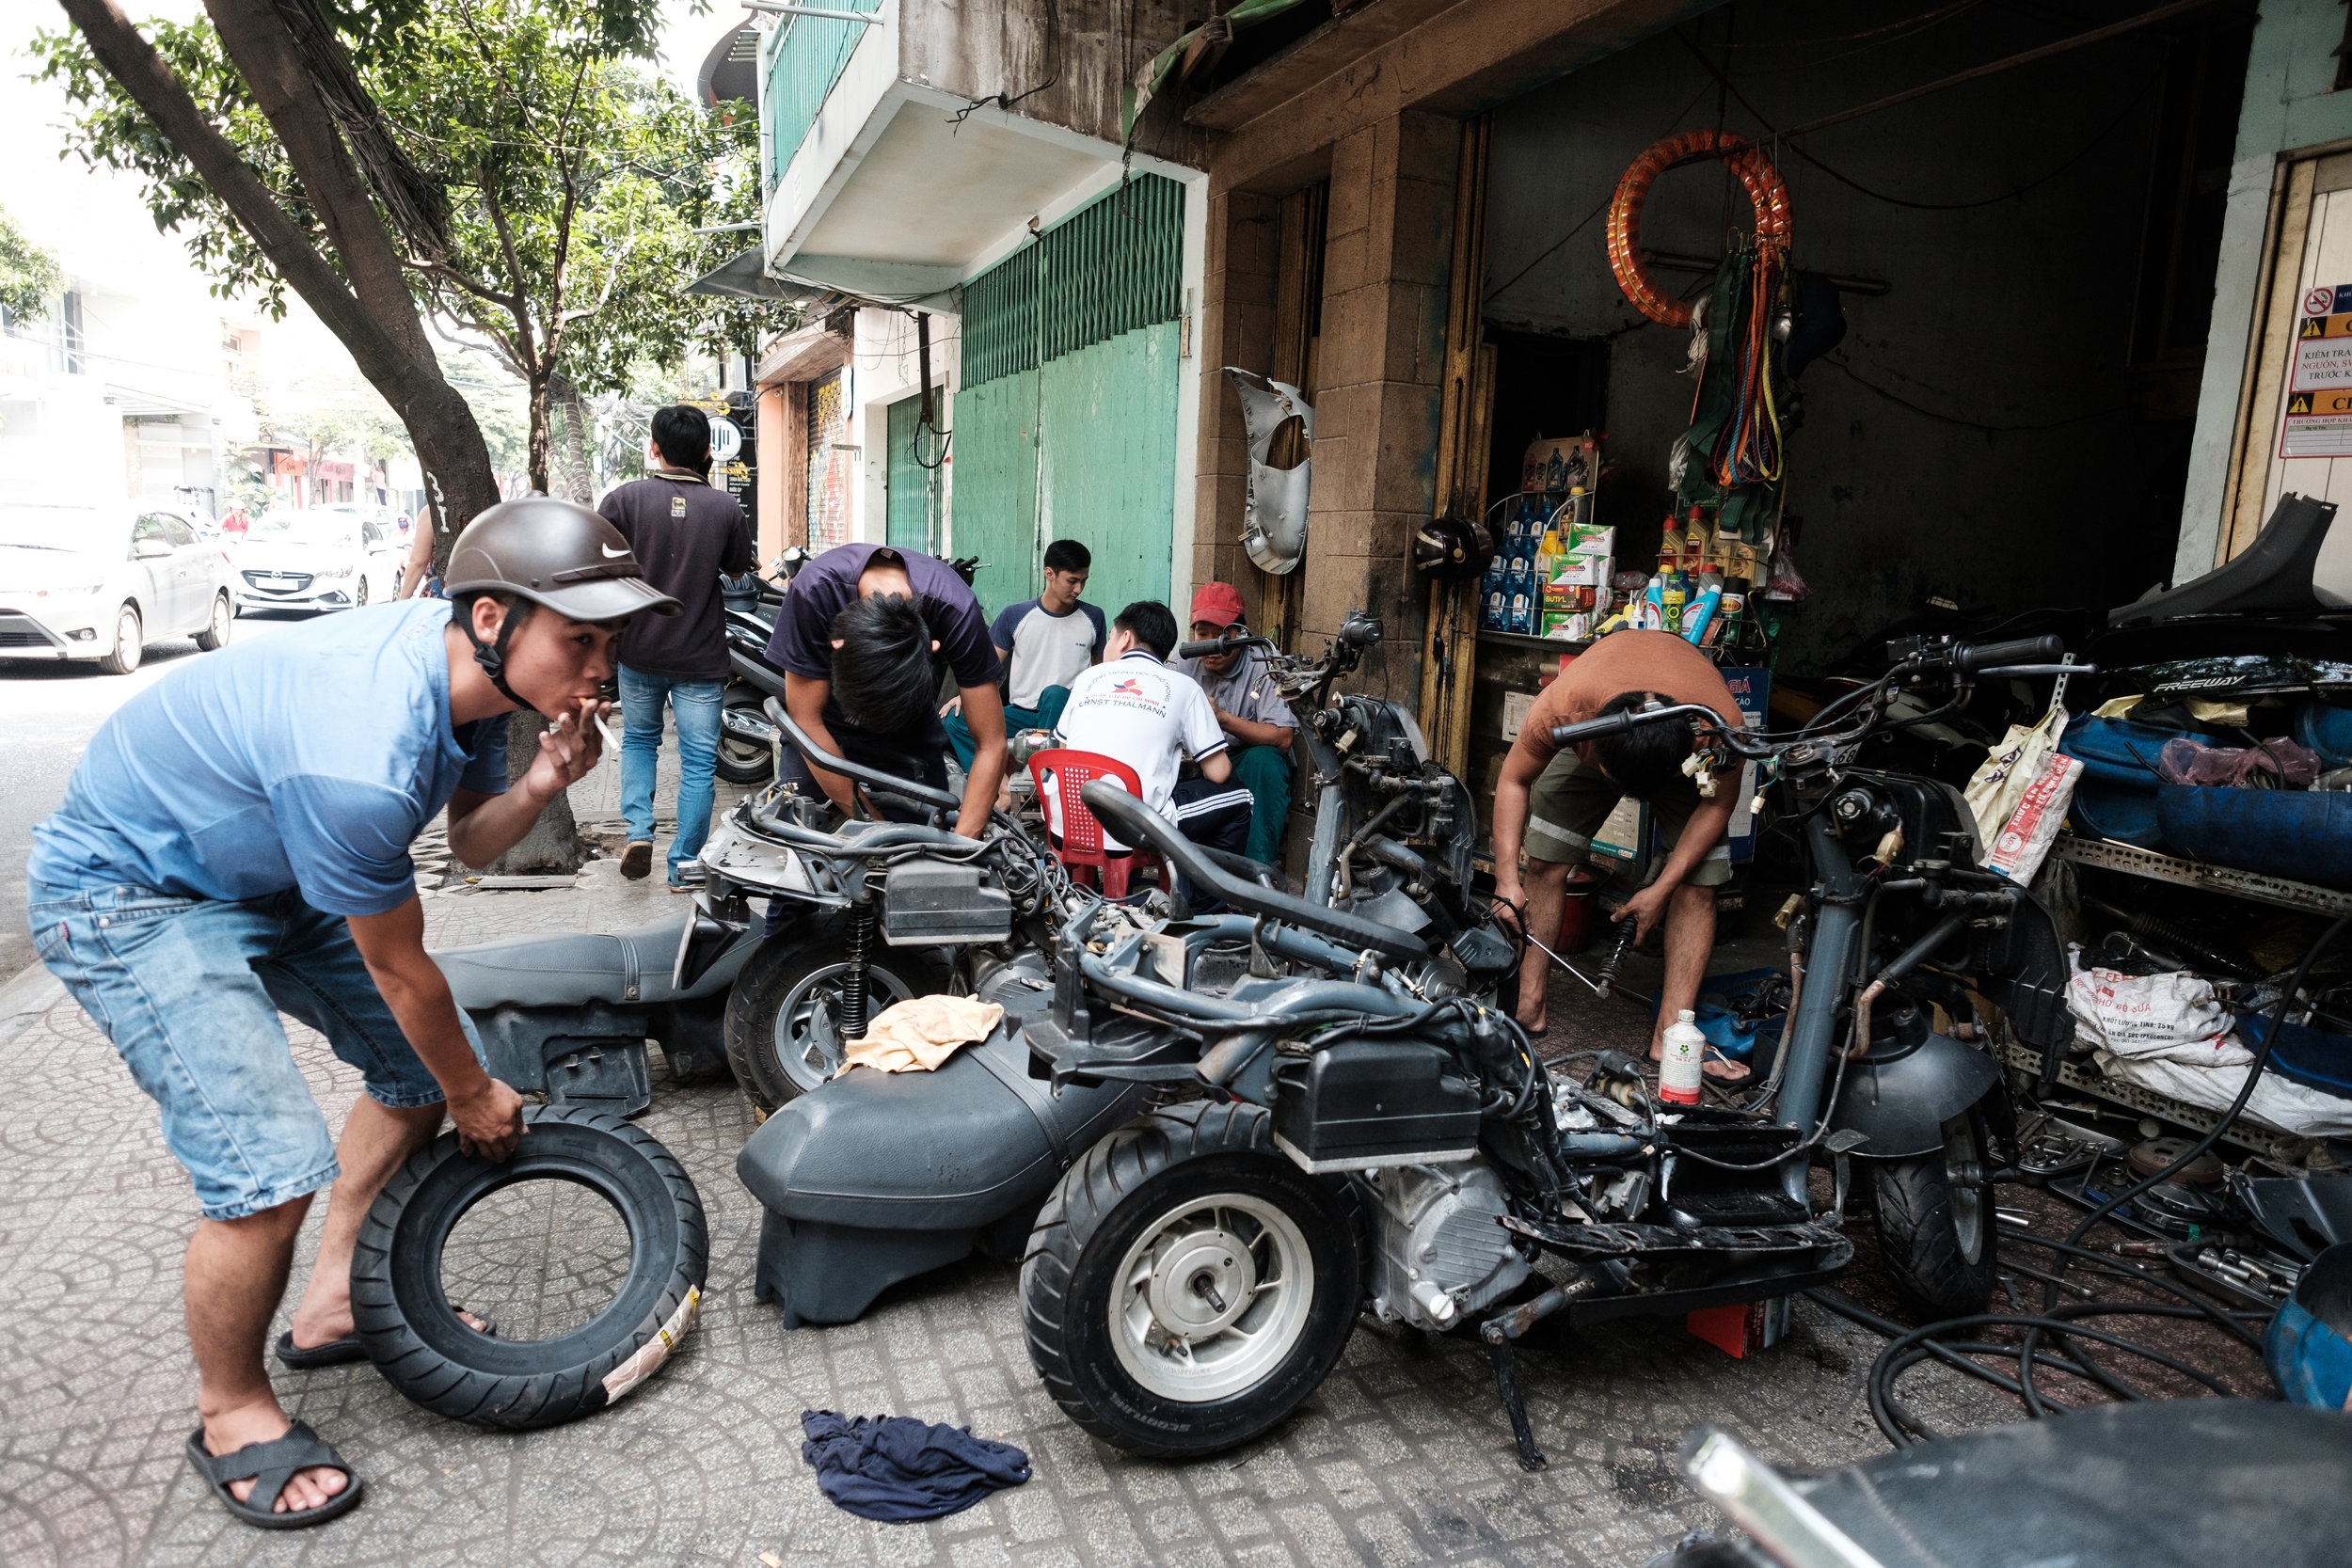 Scooter repair shop in Ho Chi Minh City, Vietnam